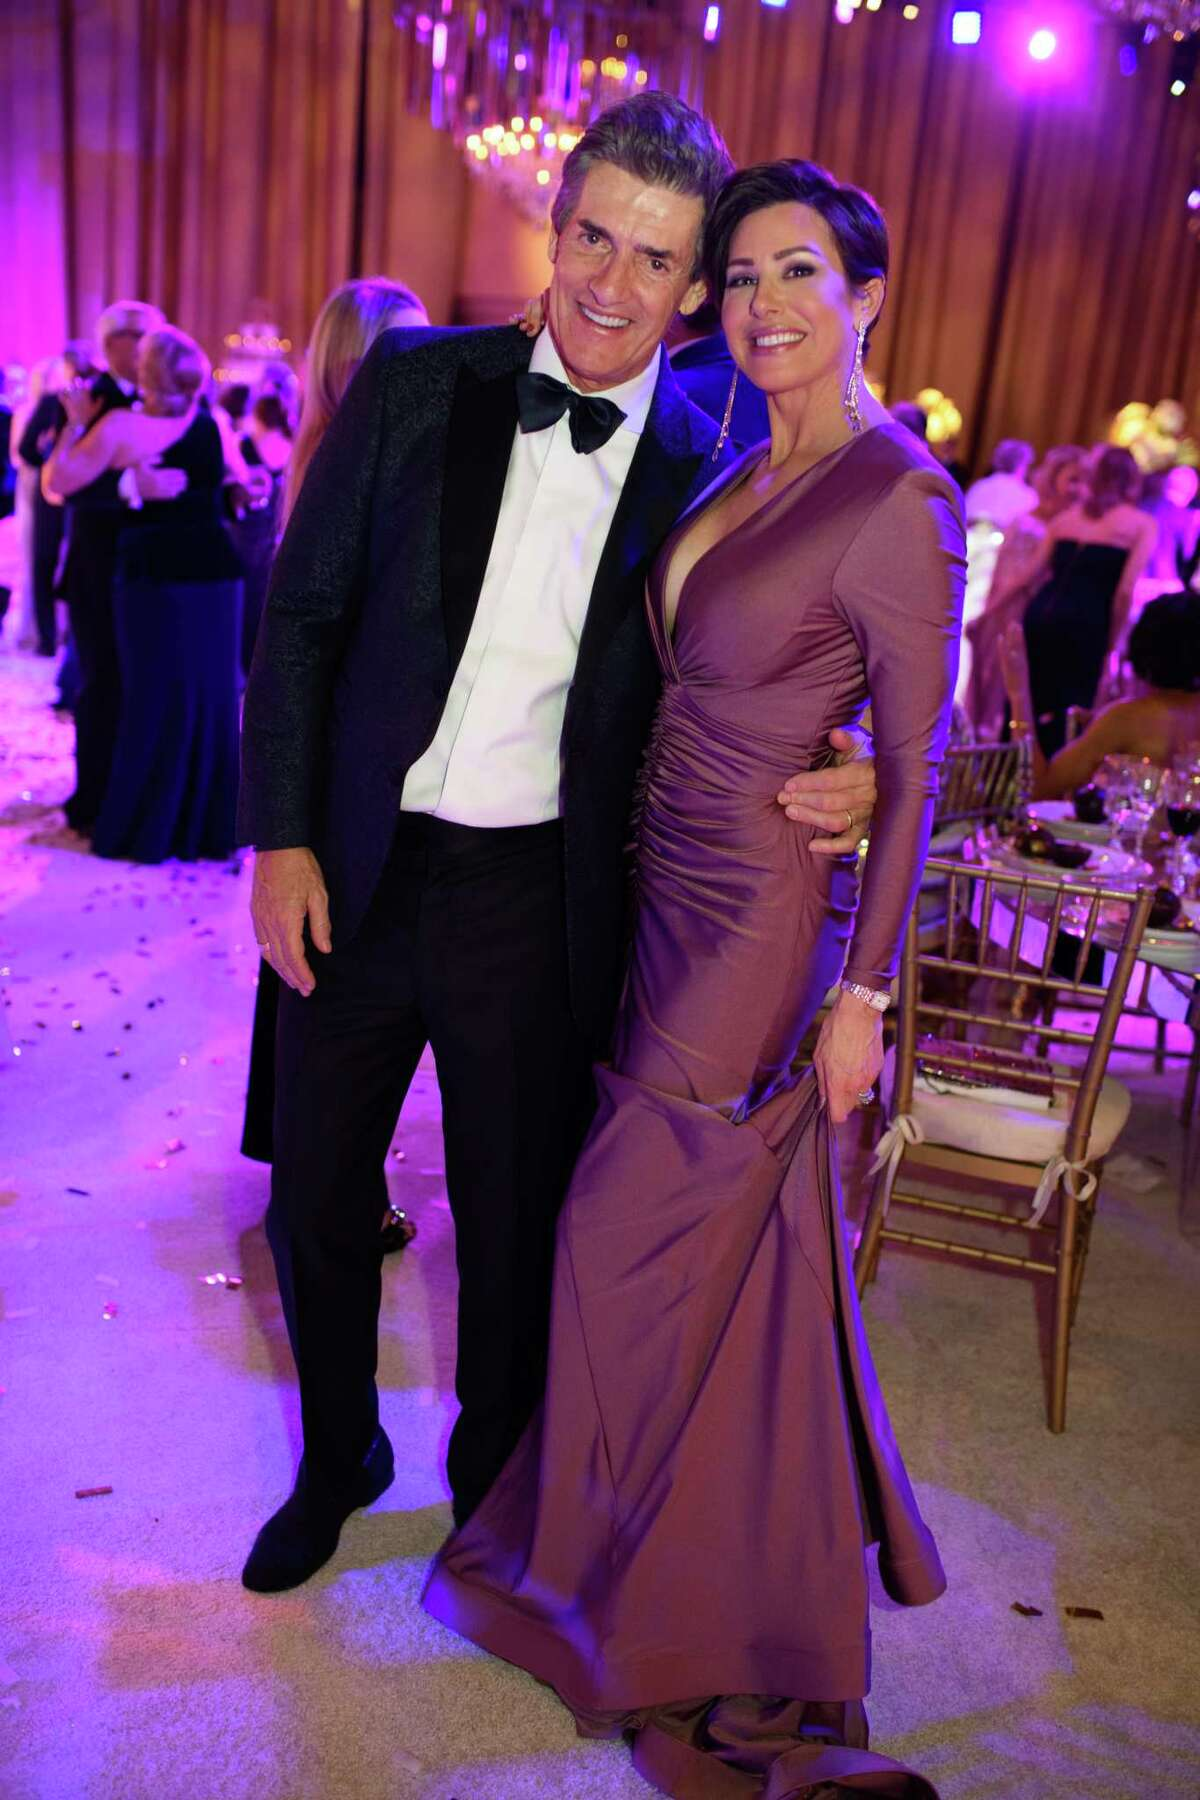 Nick Florescu and Dominique Sachse at the 50th anniversary Ballet Ball at The Wortham Theater Center in Downtown Houston, TX on Saturday, February 22, 2020